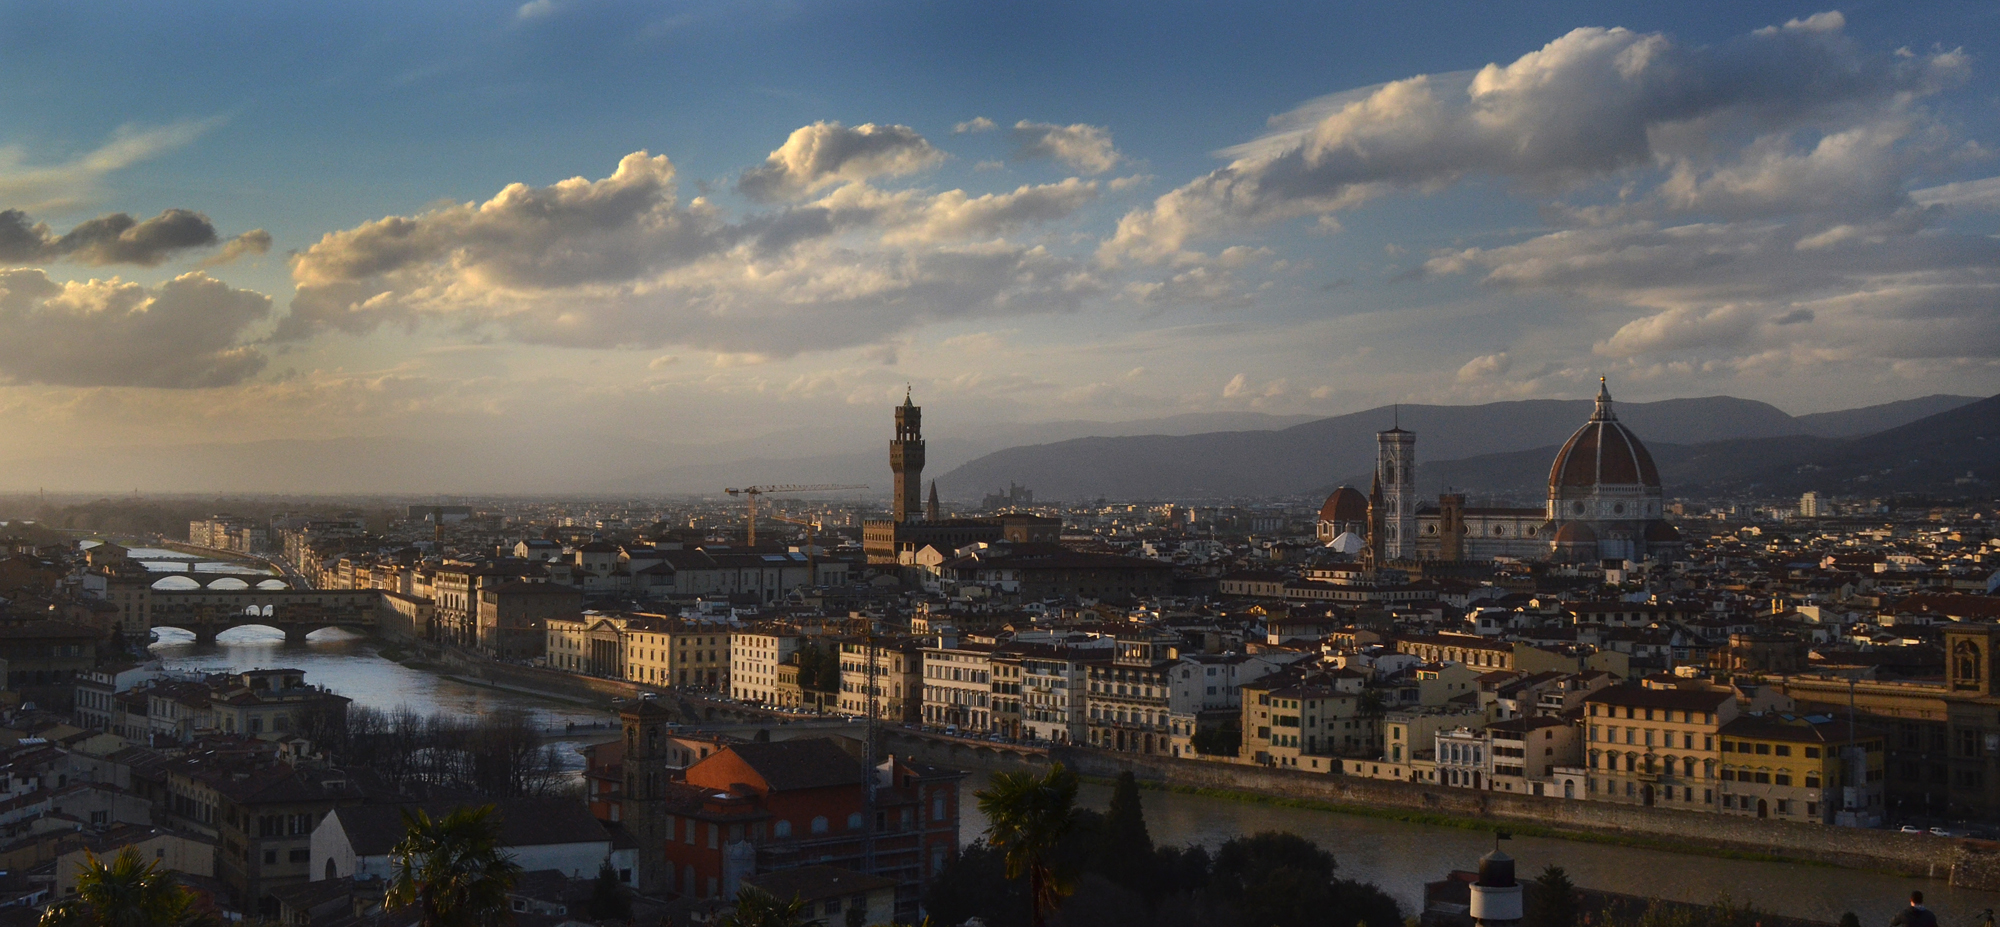 Michael McCollum3/19/13Florence Italy in late afternoon sun